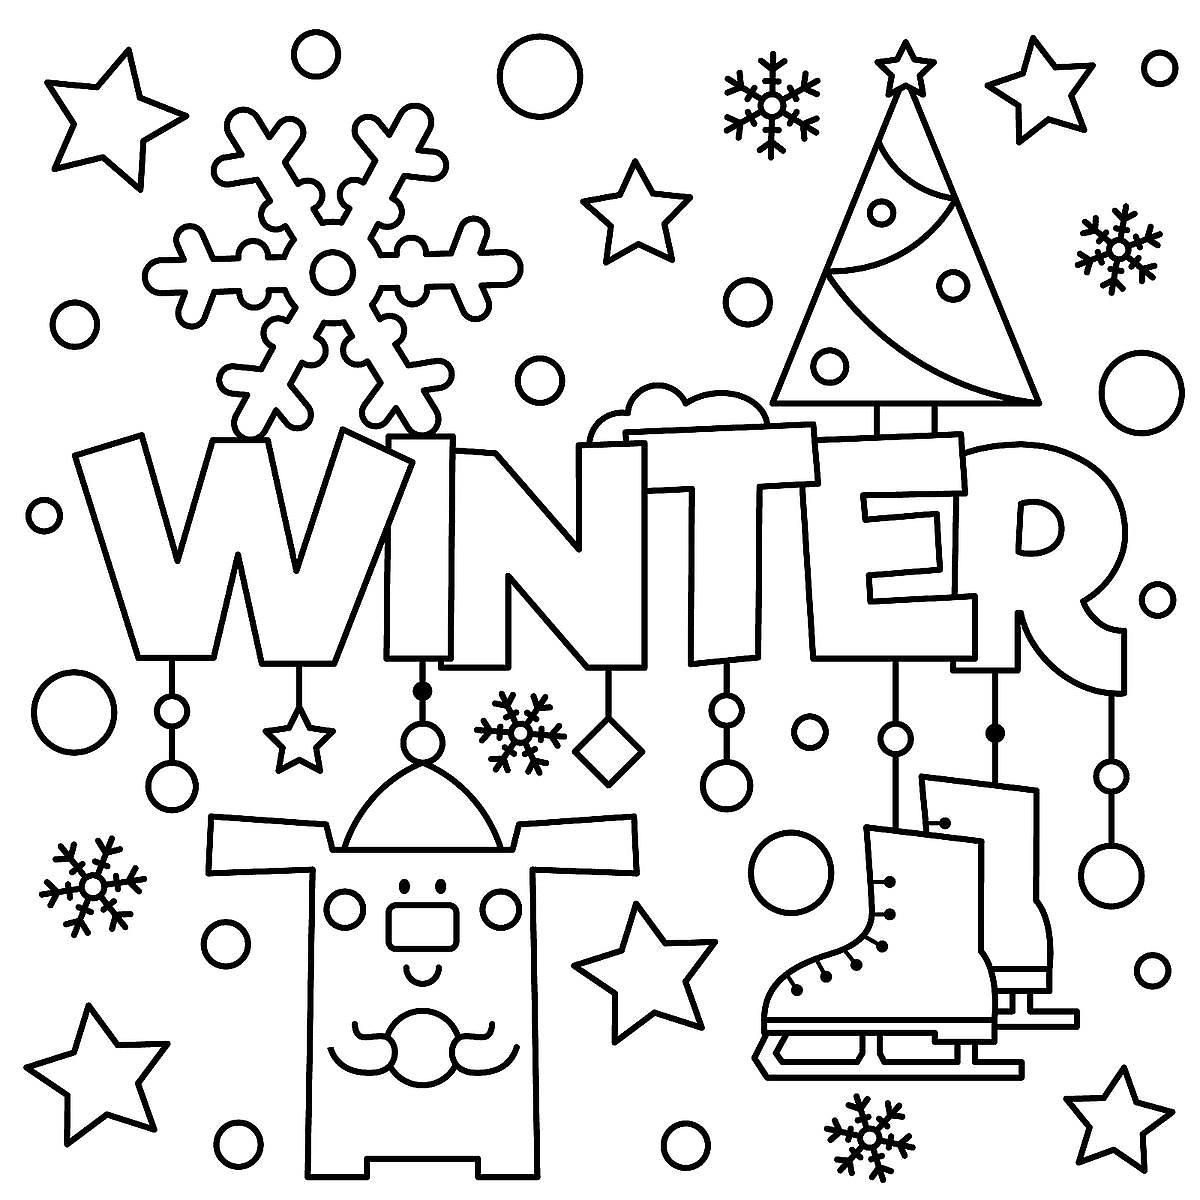 Winter Puzzle Coloring Pages Free Printable Winter Themed Activity Pages For Kids Printables 30seconds Mom Coloring Pages Winter Coloring Pages For Kids Printable Coloring Pages